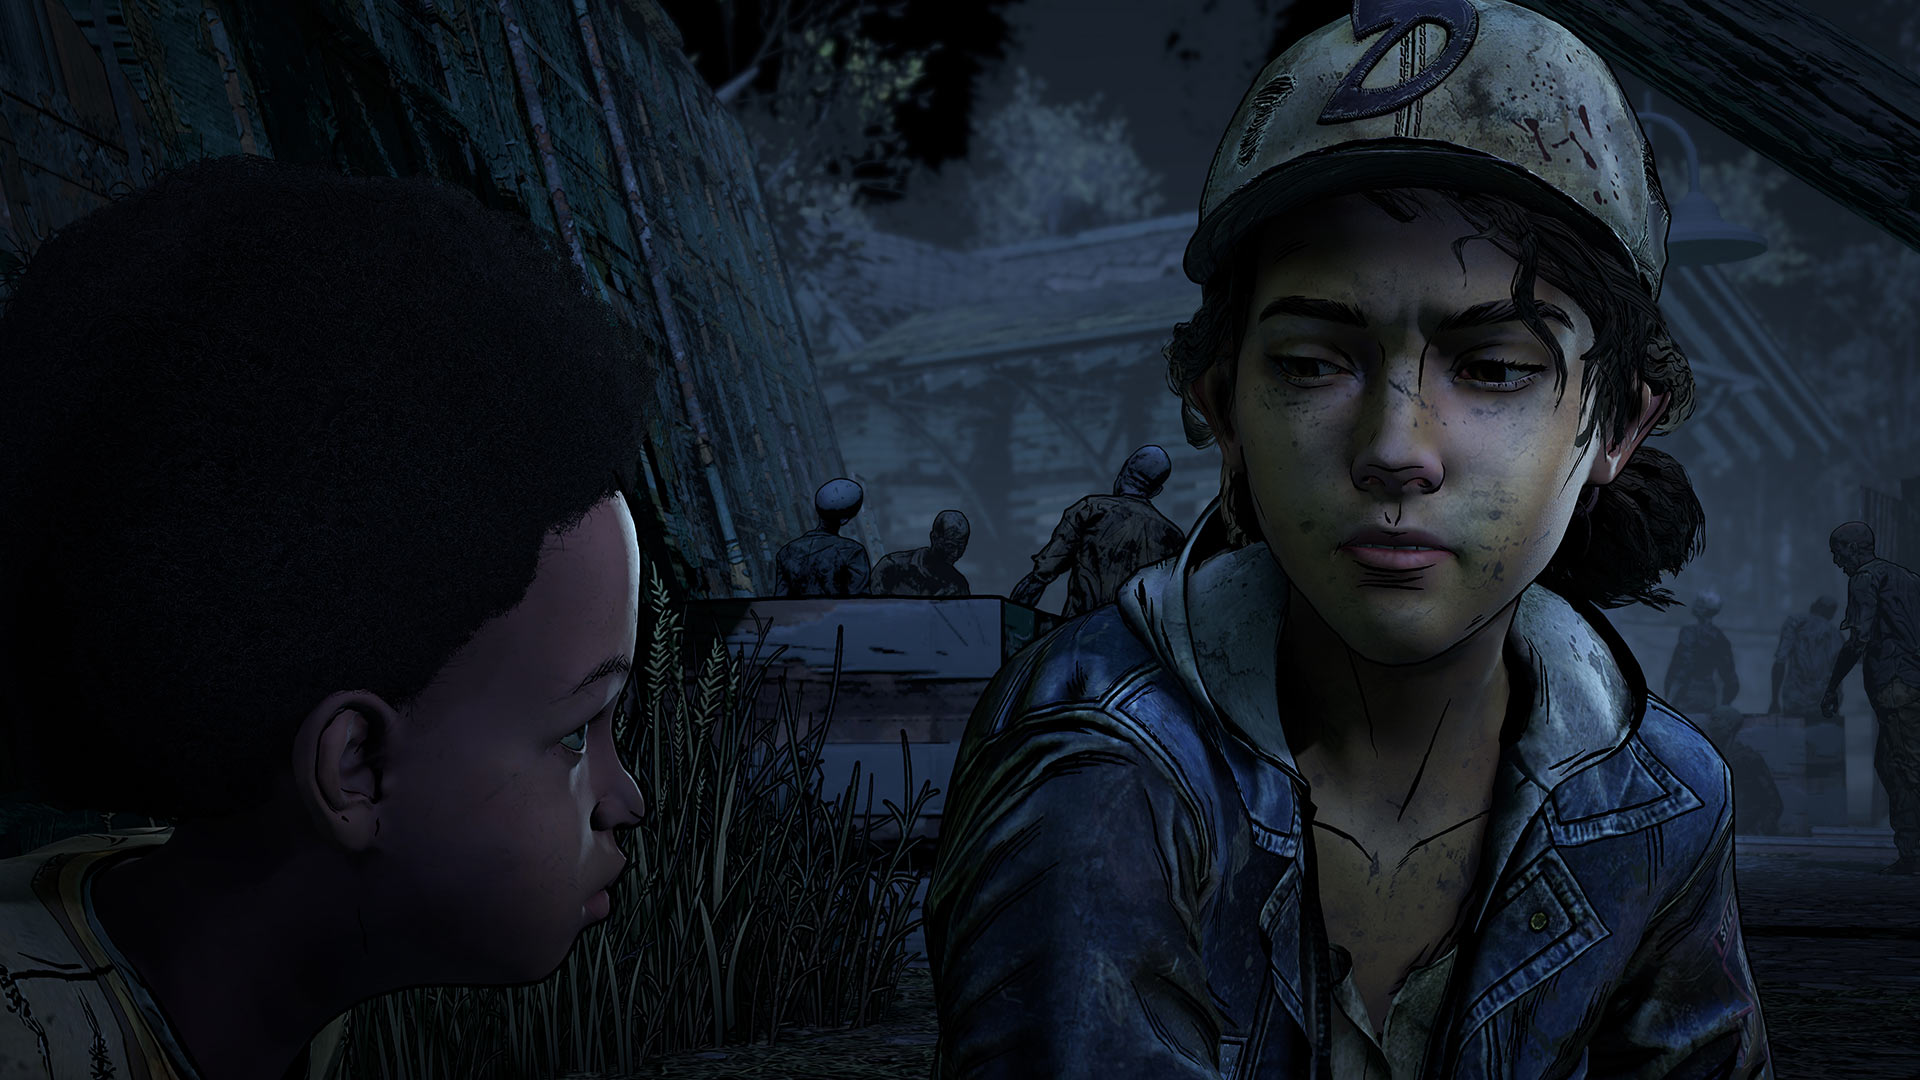 There are no plans for a new season of The Walking Dead game, Skybound says screenshot